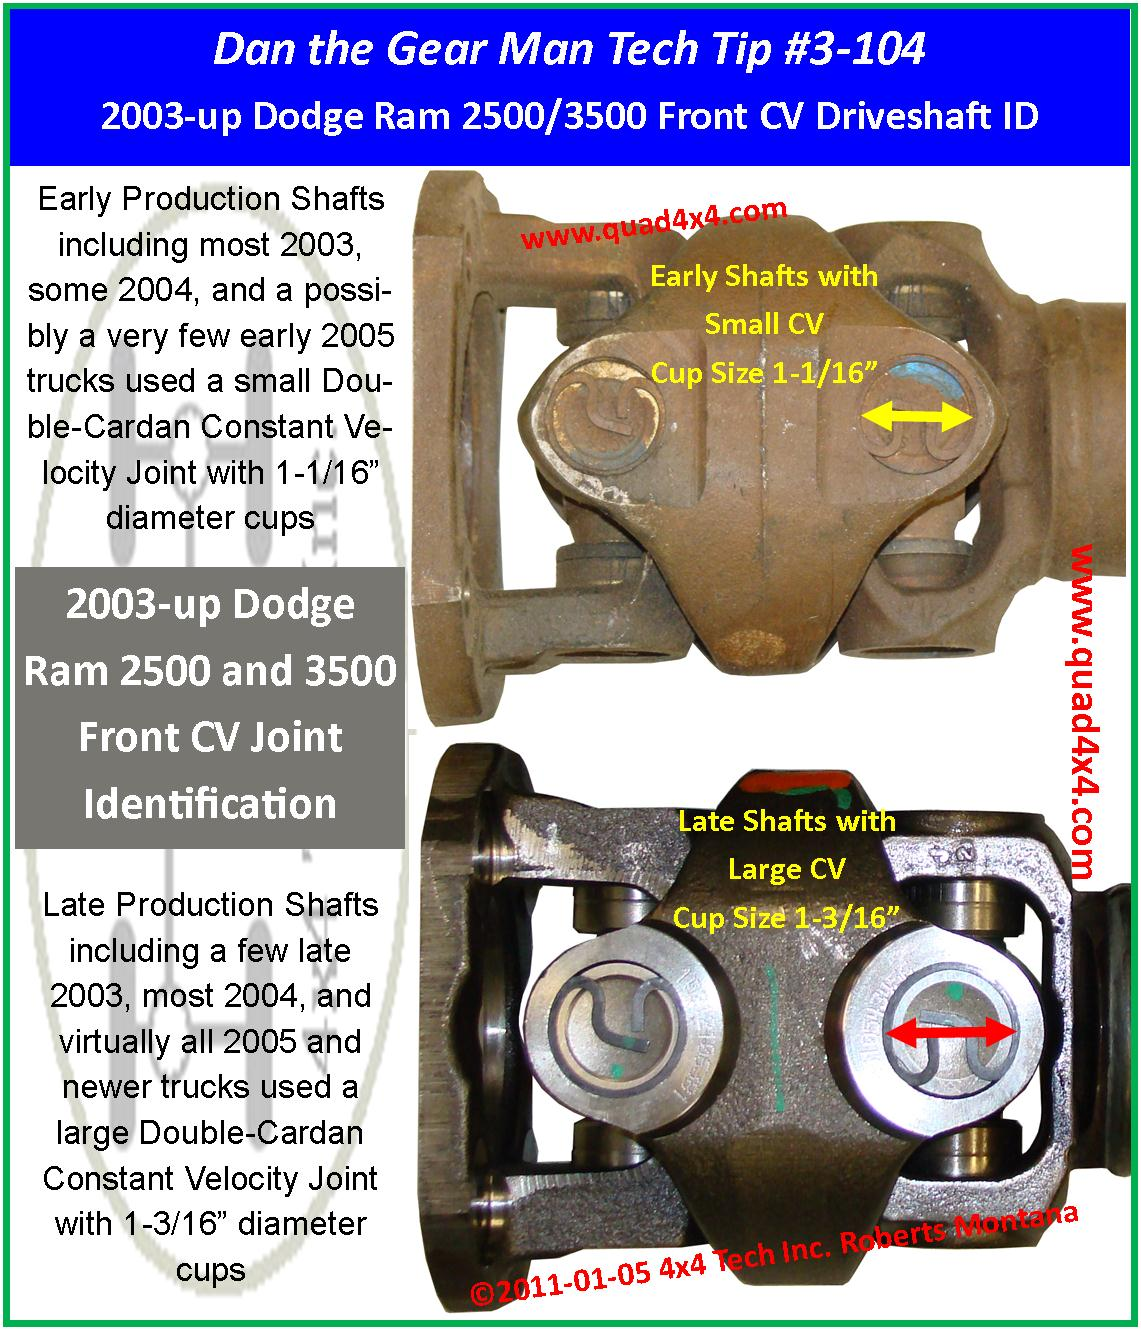 dodgefrontdriveshaft up torque king x see our tk3108 large text individual page for more details and tech notes also available is tm3303 an optional comprehensive dodge specific color